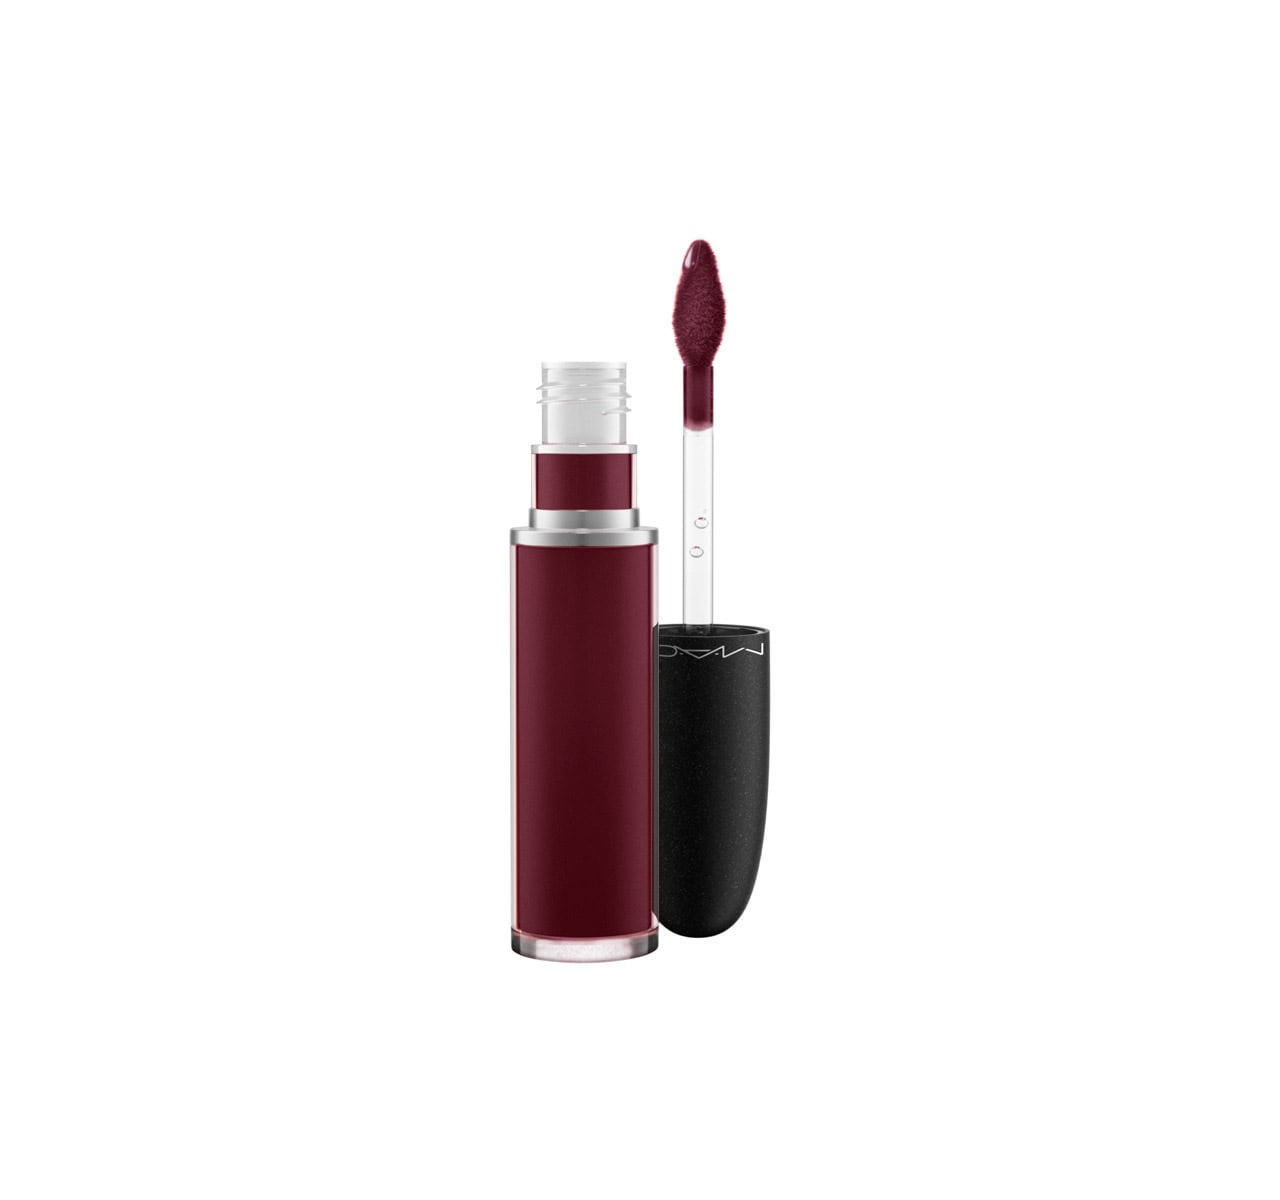 Lipstick Mac Cosmetics Official Site Make Over Ultra Cover Liquid Matt Foundation 33 Ml Retro Matte Lipcolour